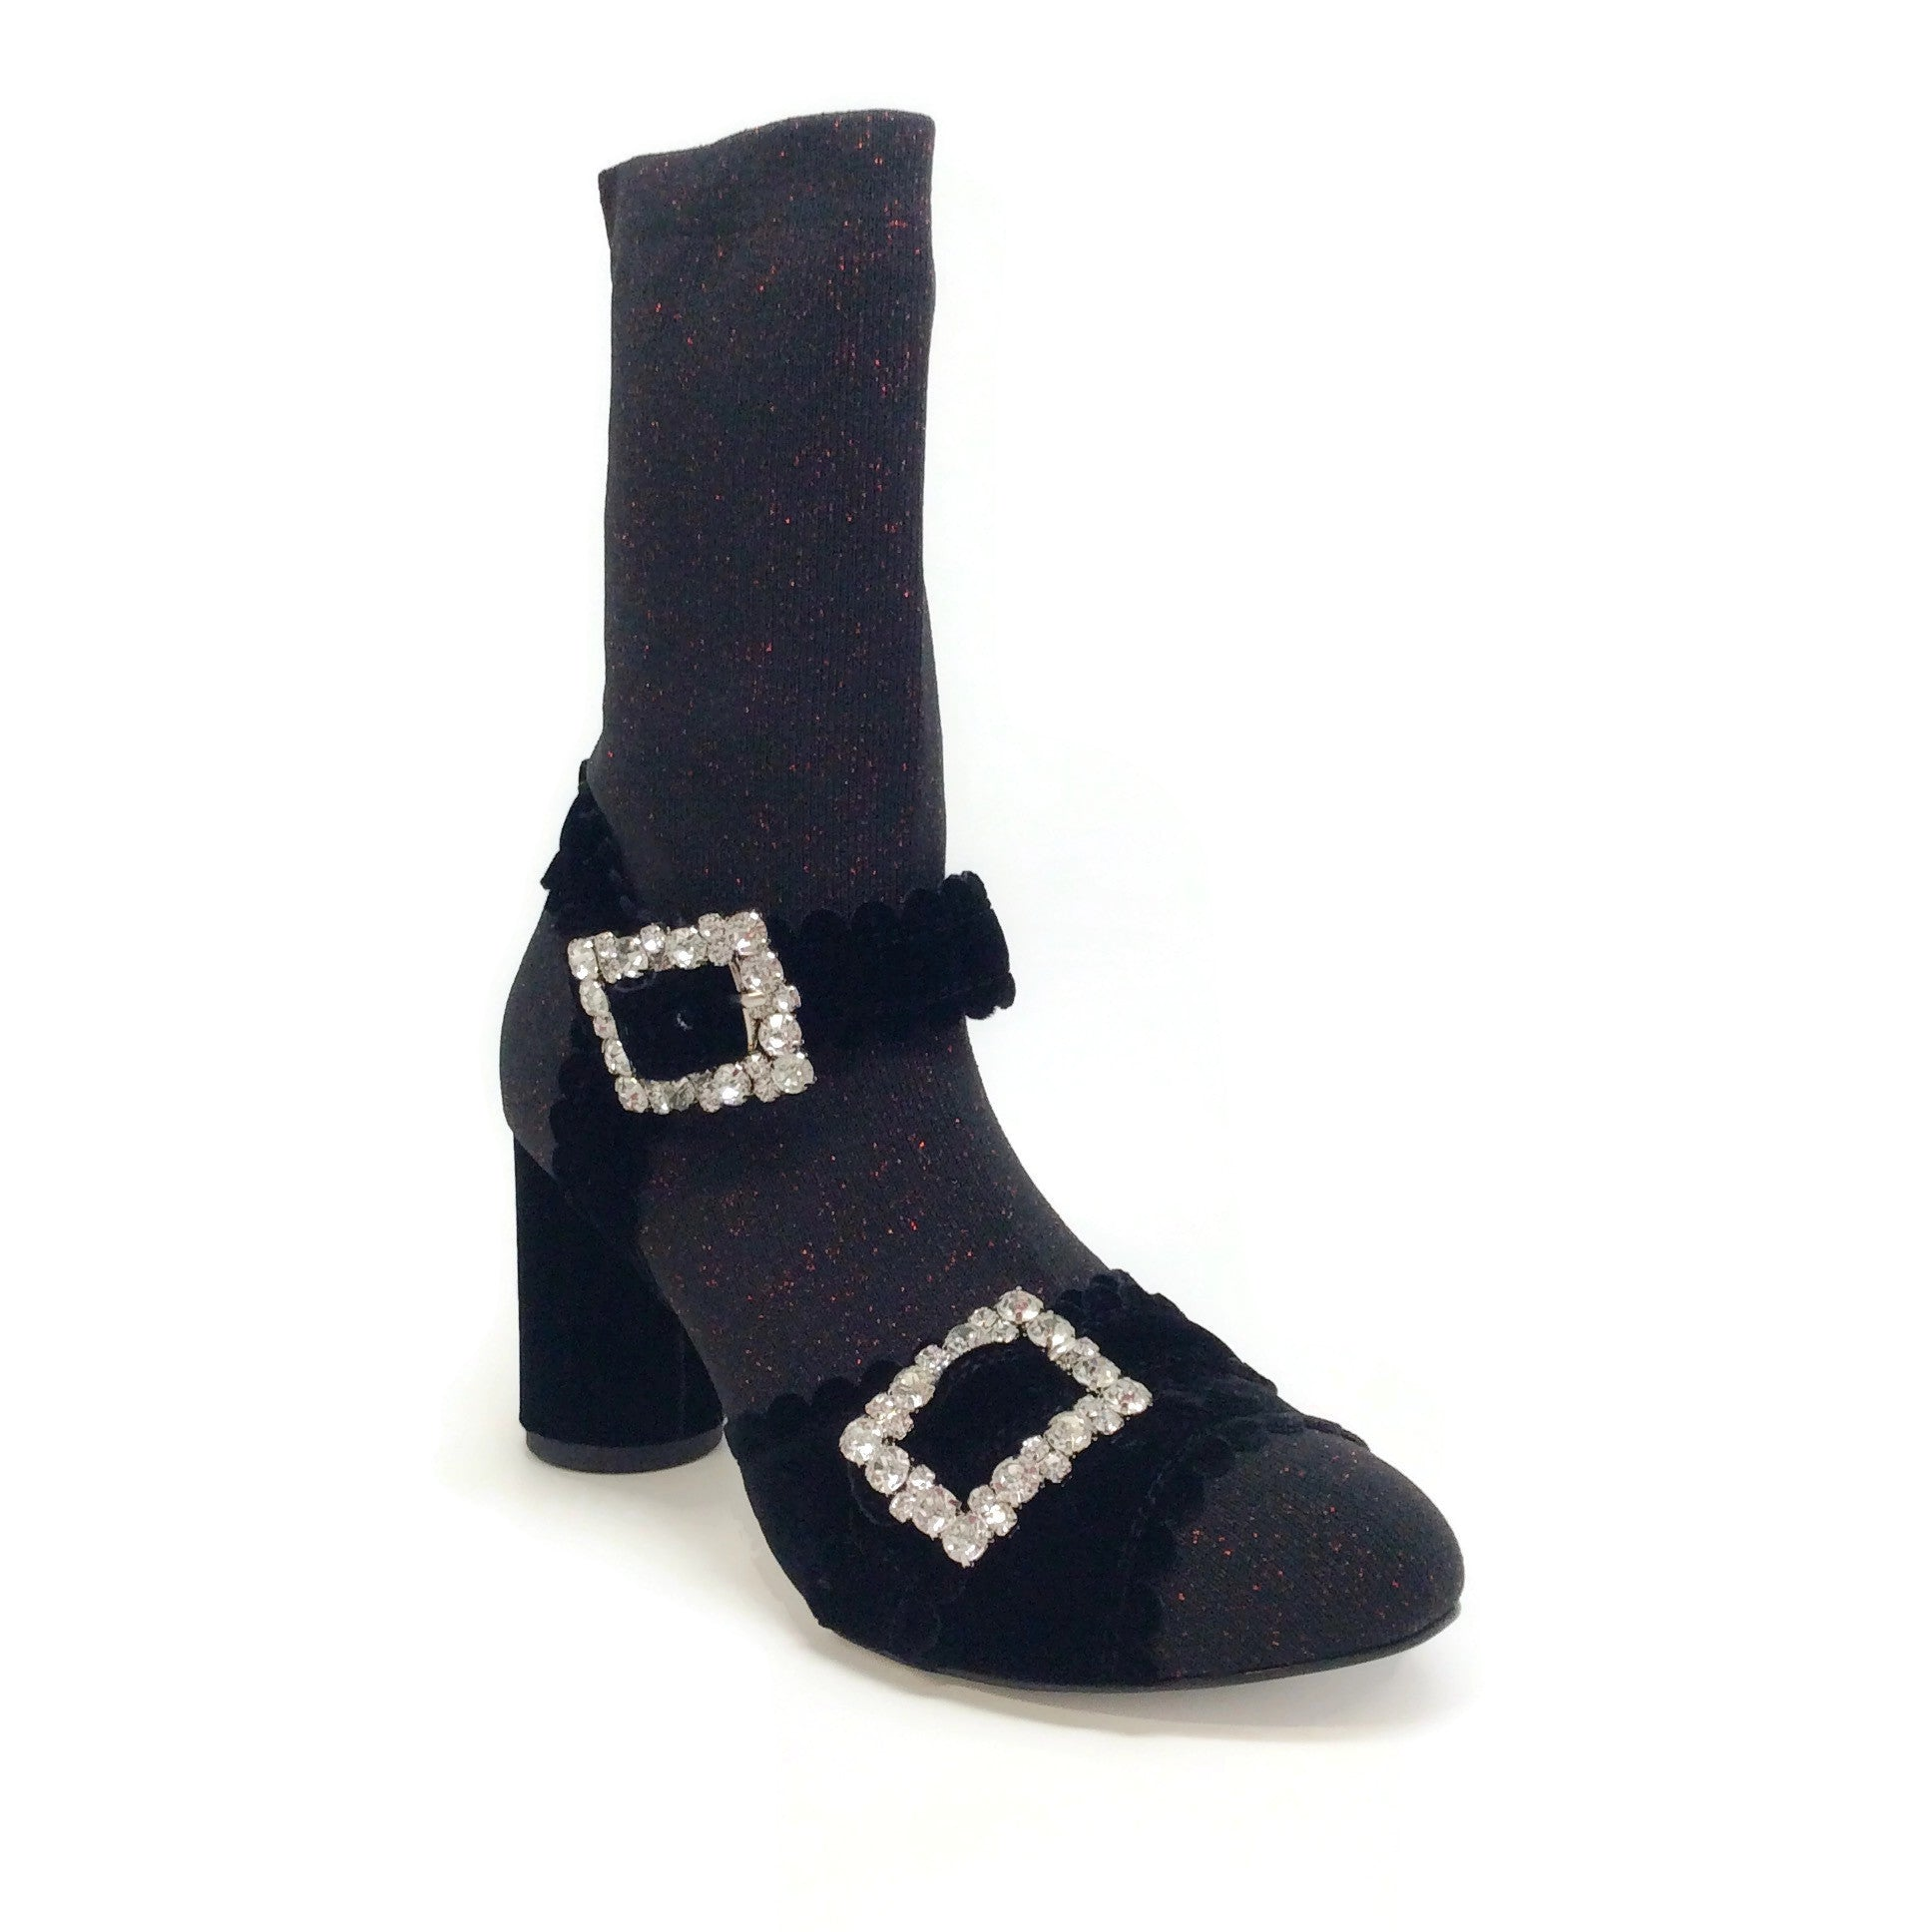 Suecomma Bonnie Black / Red Glitter Sock Sandal Boots